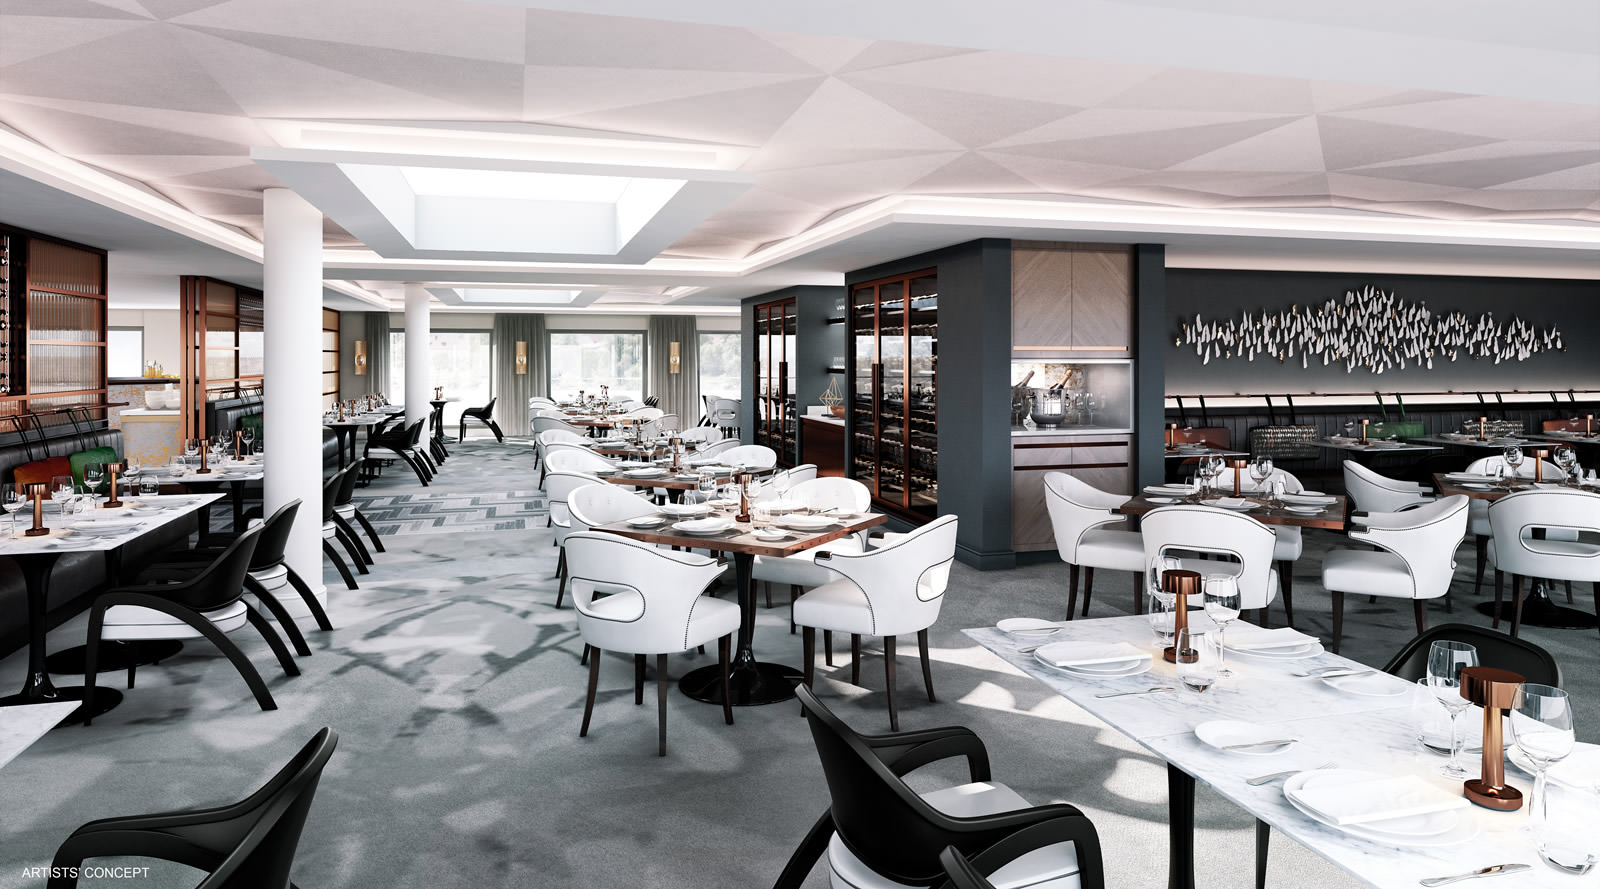 Crystal Mozart Restaurant rendering. Courtesy of Crystal Cruises